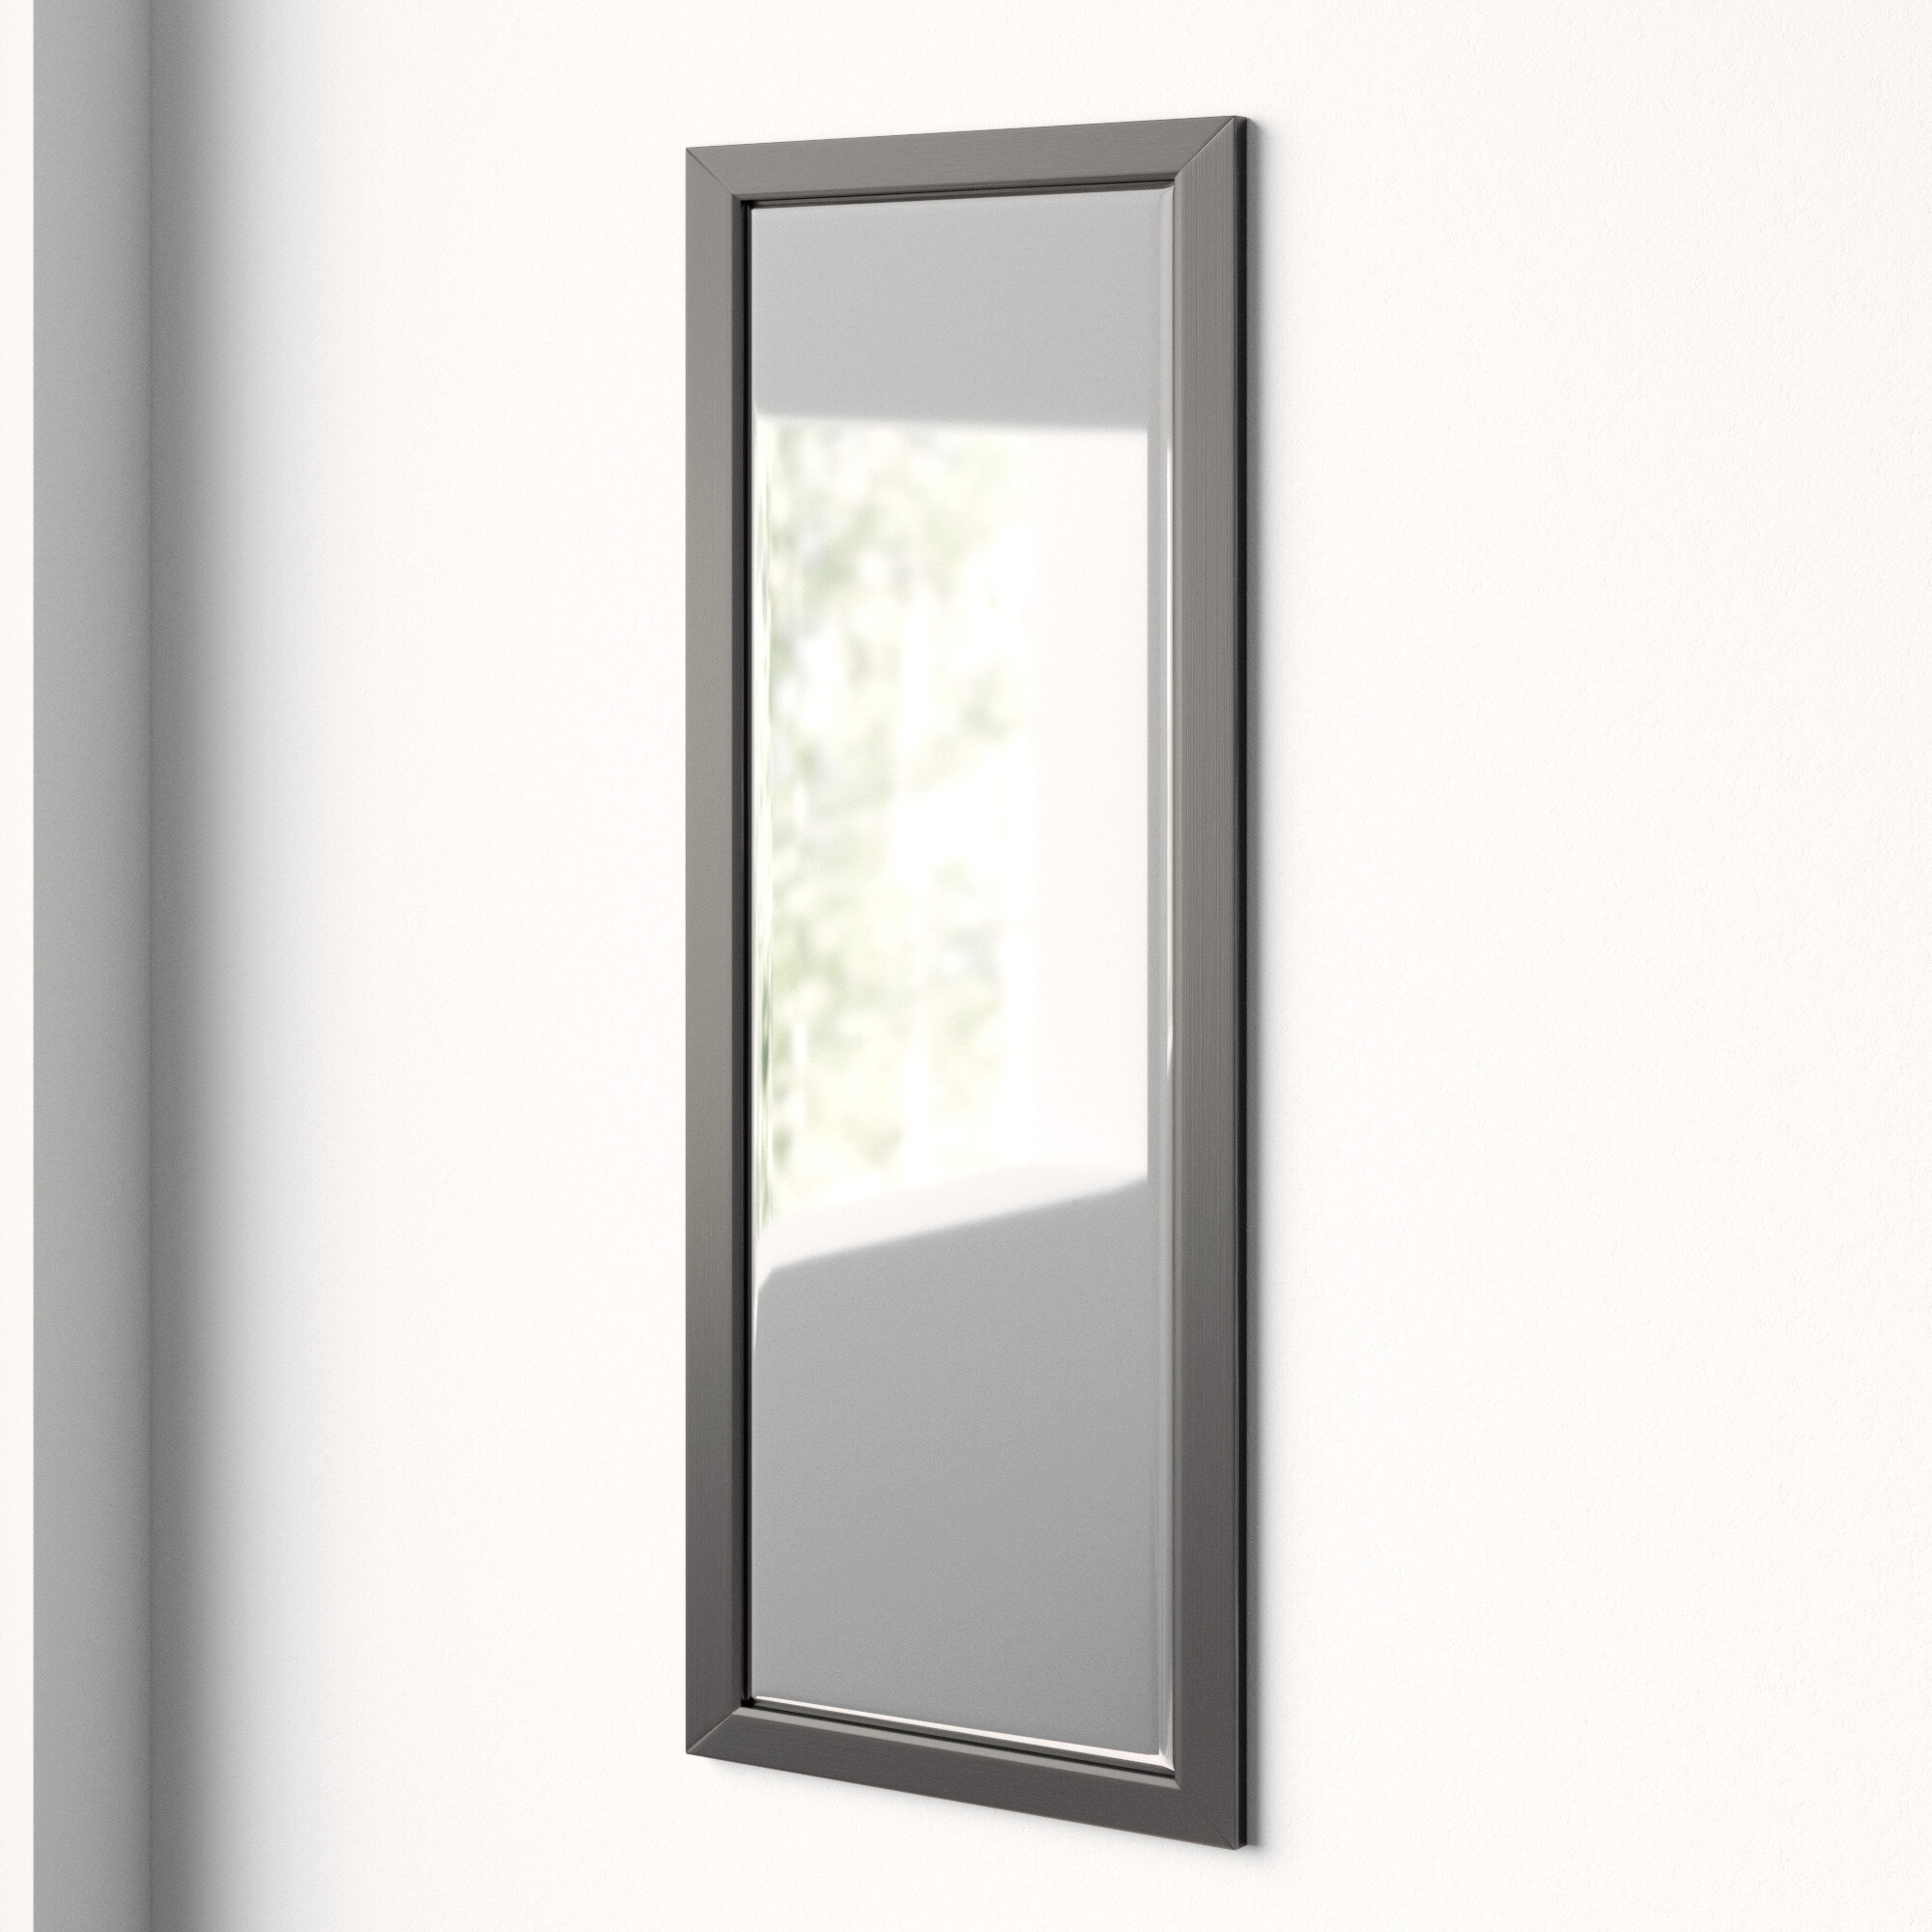 Edge Minimal Modern & Contemporary Full Length Body Mirror Within Modern & Contemporary Beveled Accent Mirrors (Photo 11 of 30)